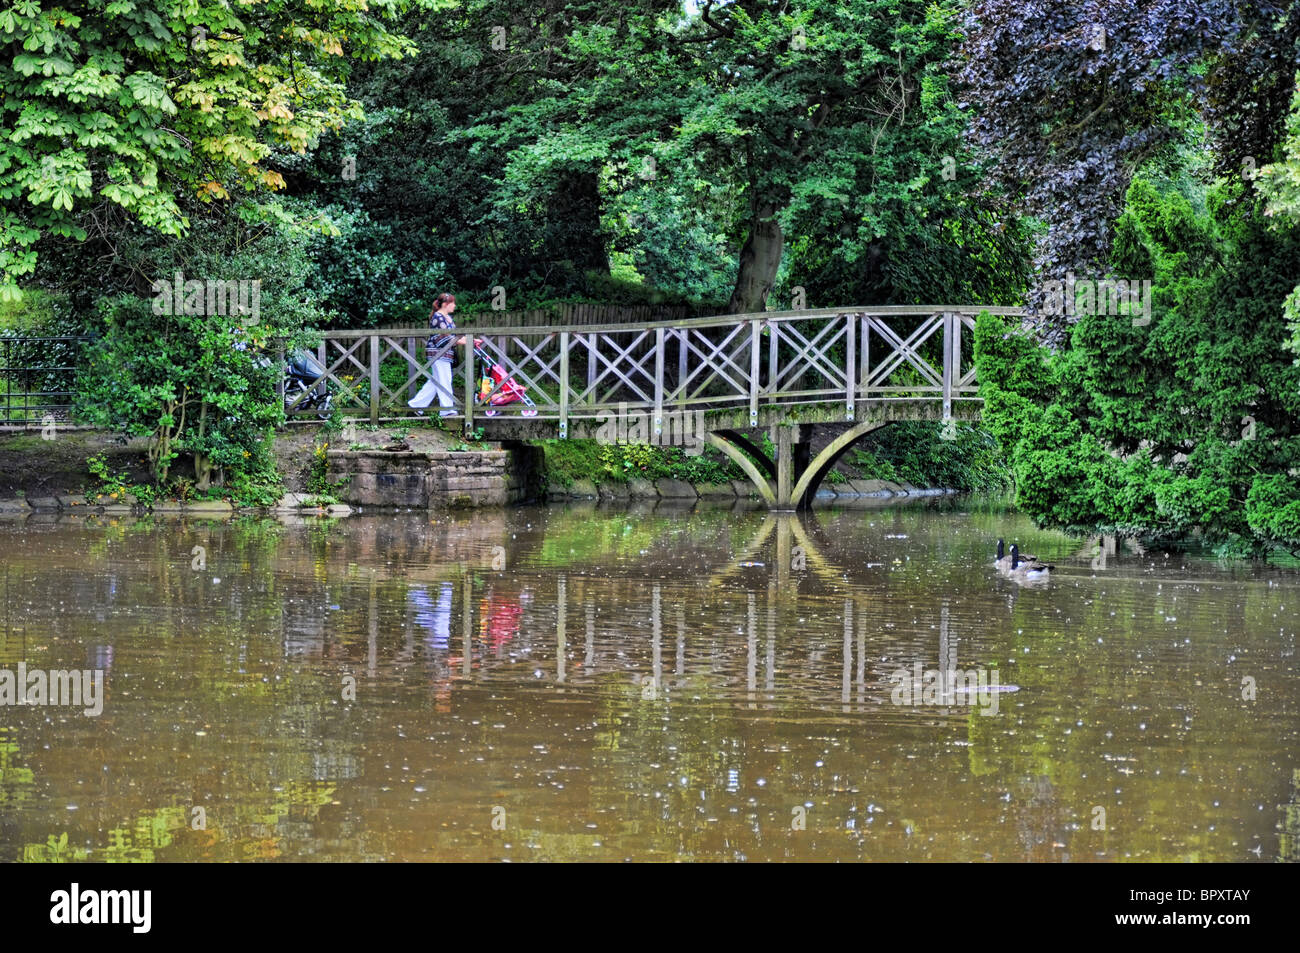 A young mum crossing a  bridge in Birkenhead Park - Stock Image